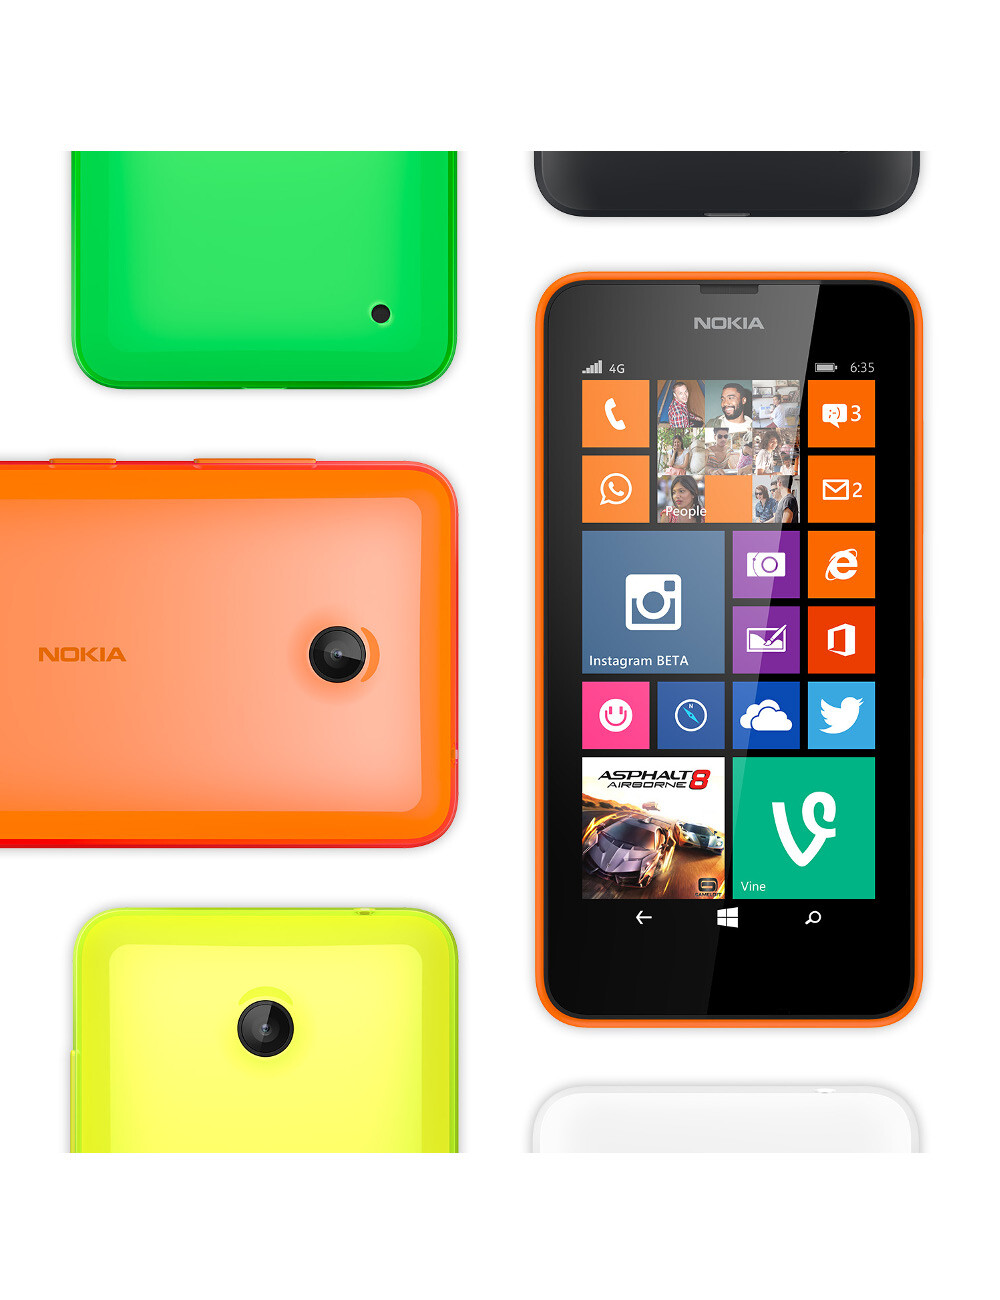 Nokia and Microsoft Talk about Phones